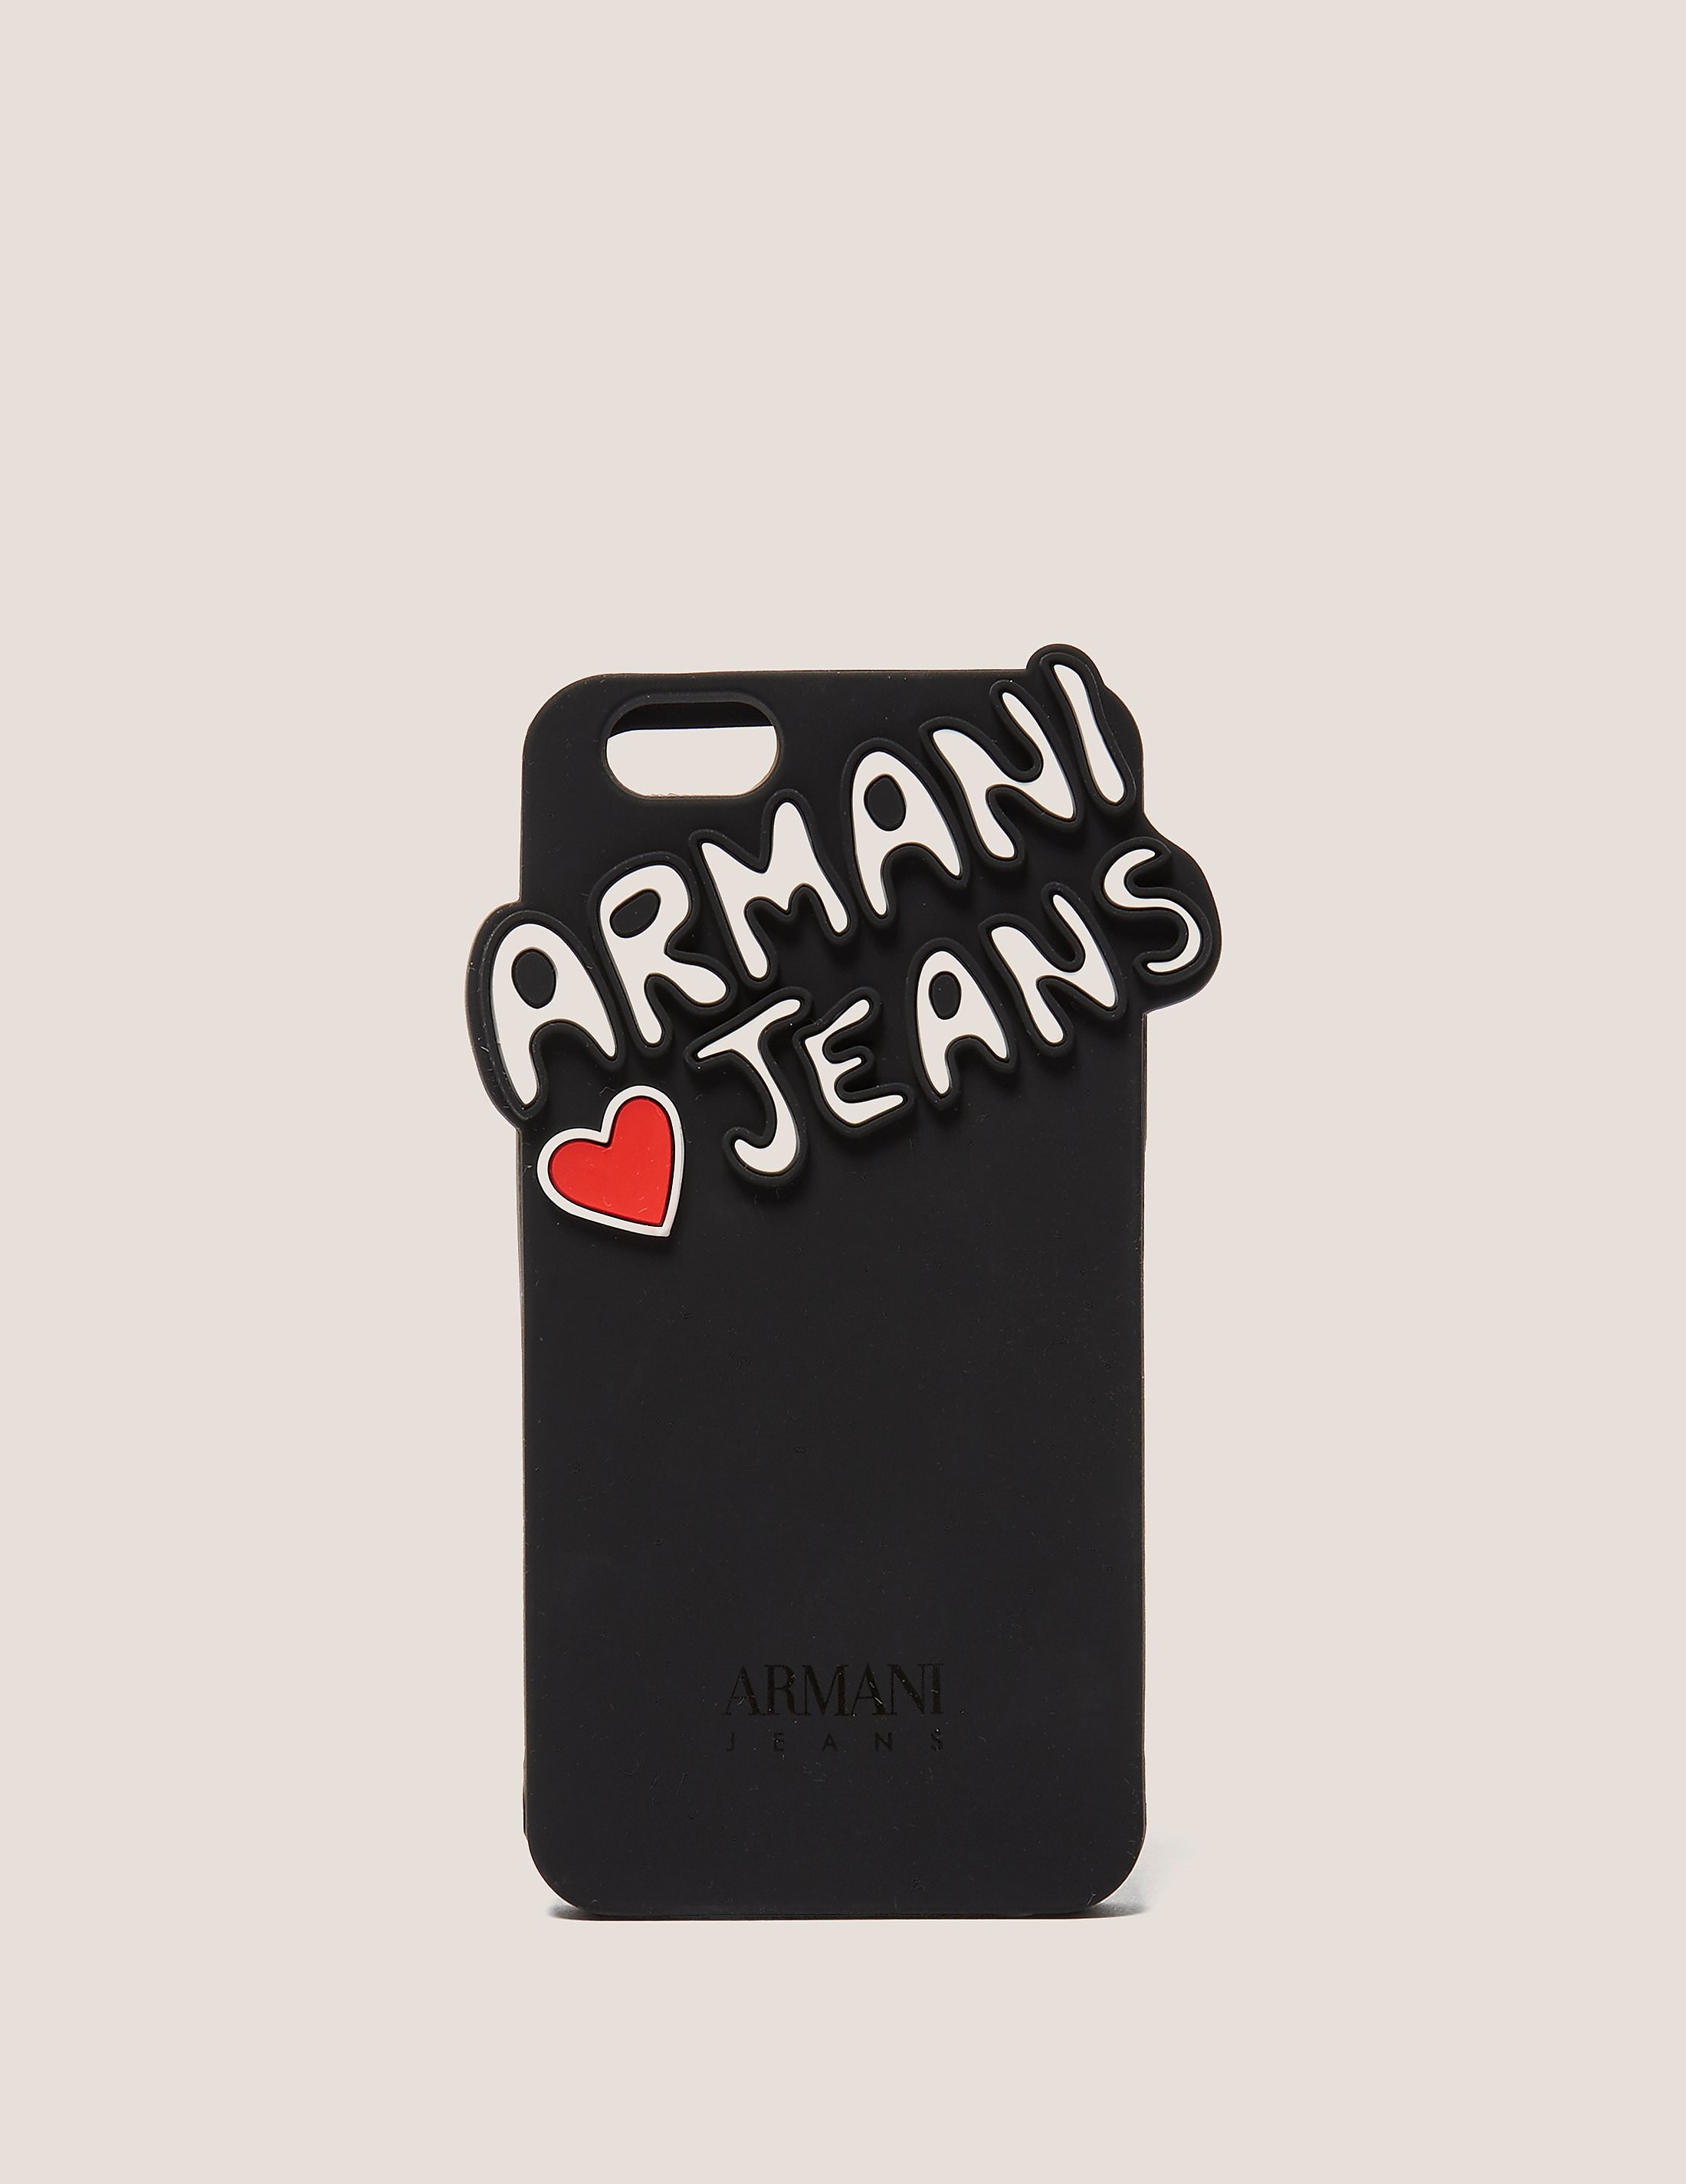 Armani Jeans Logo iPhone 6 Phone Case